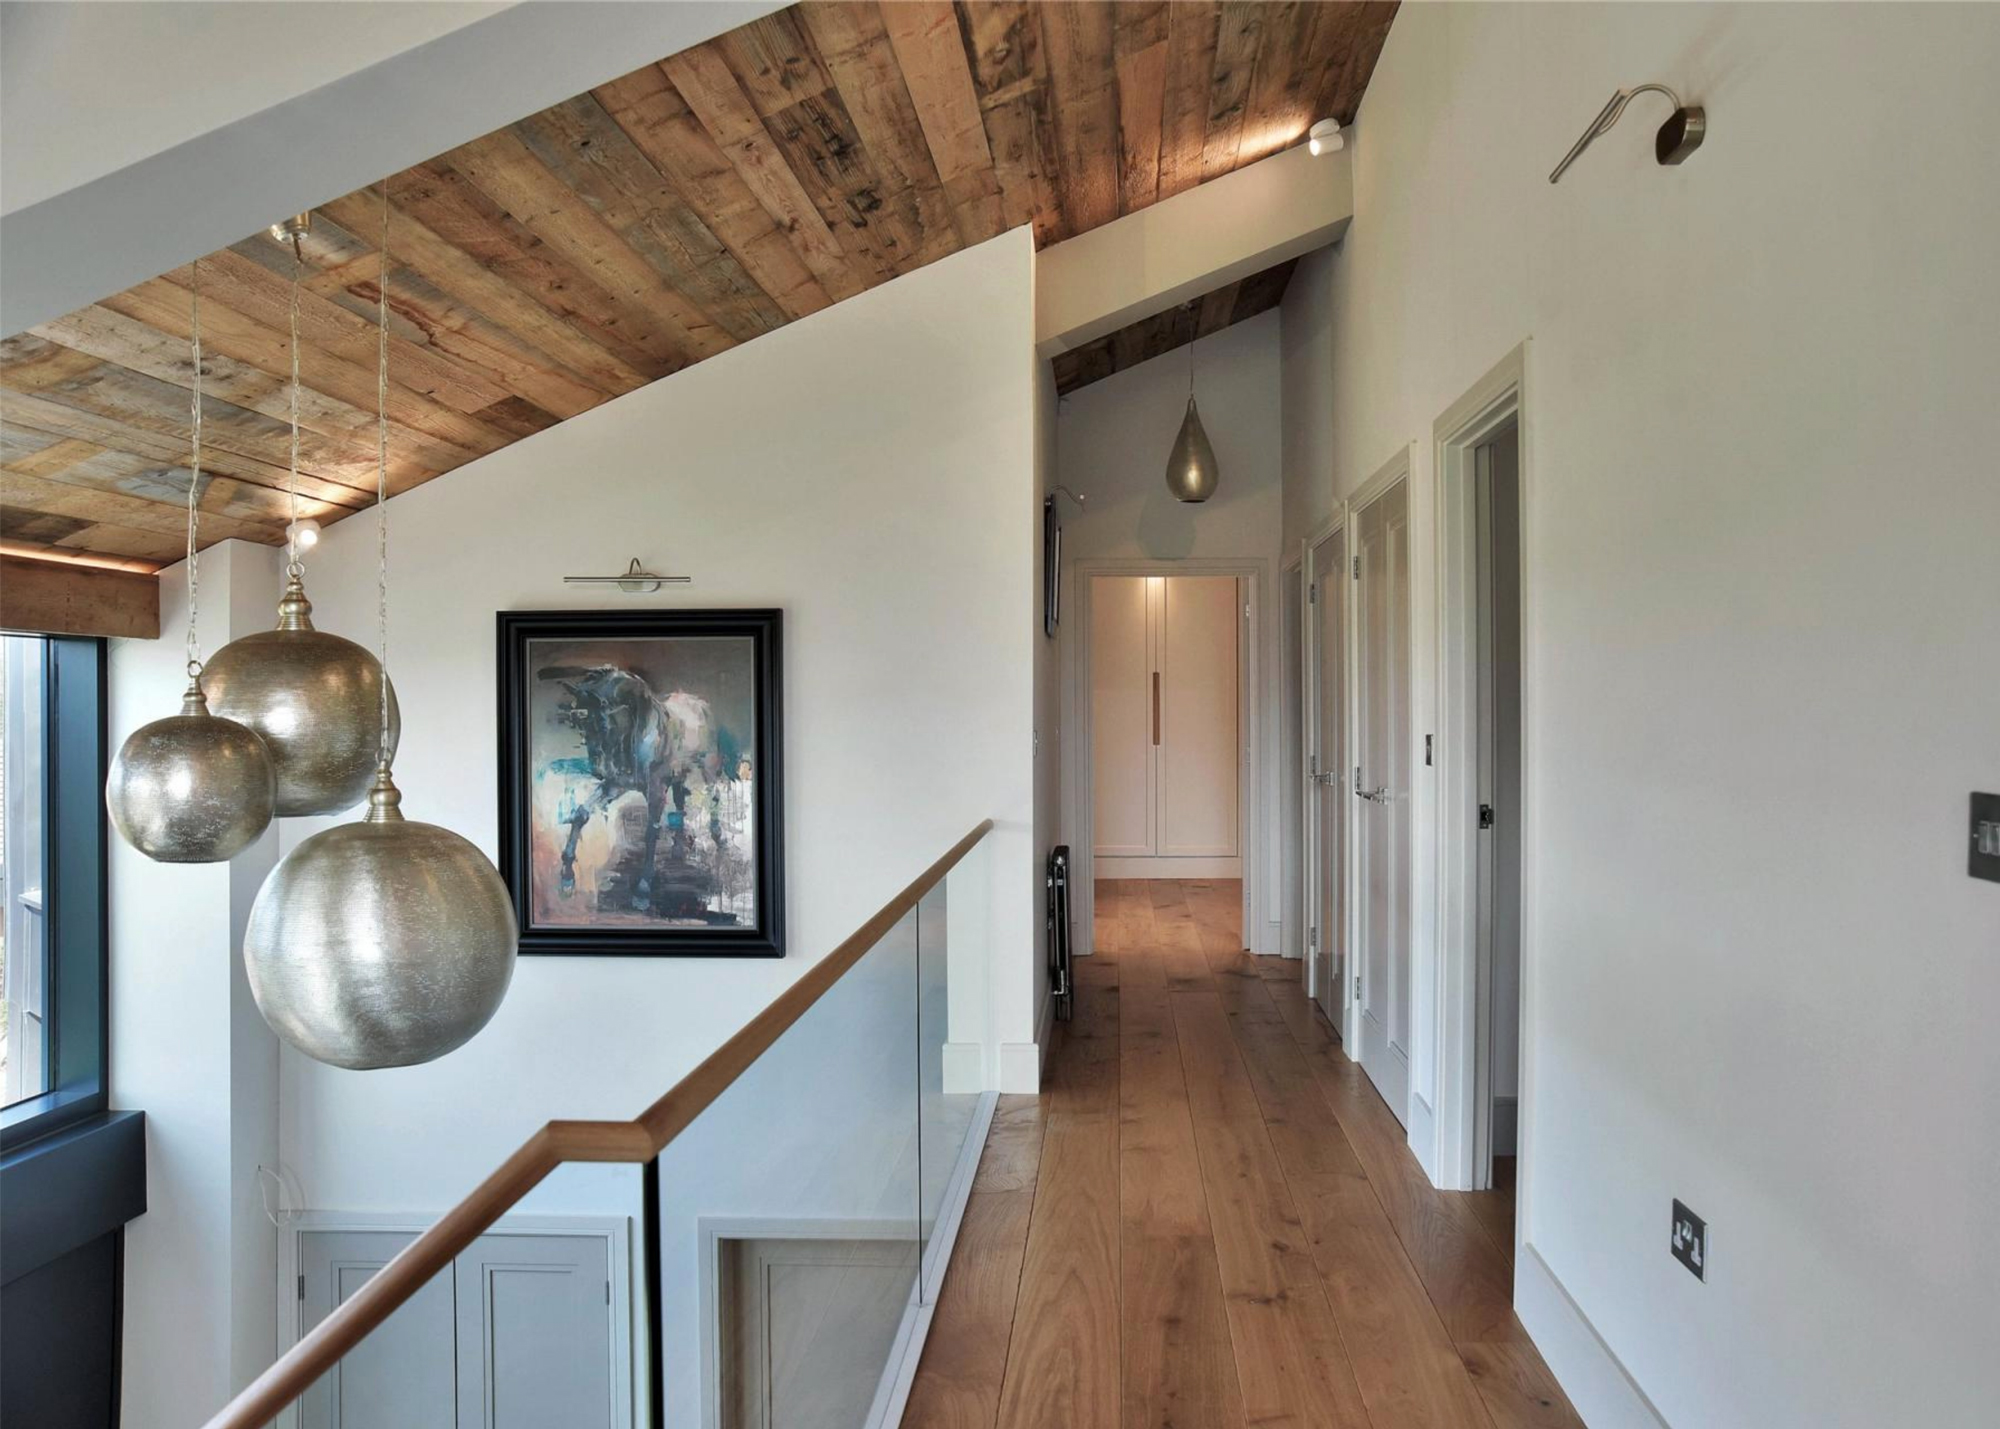 Rustic cladded ceiling